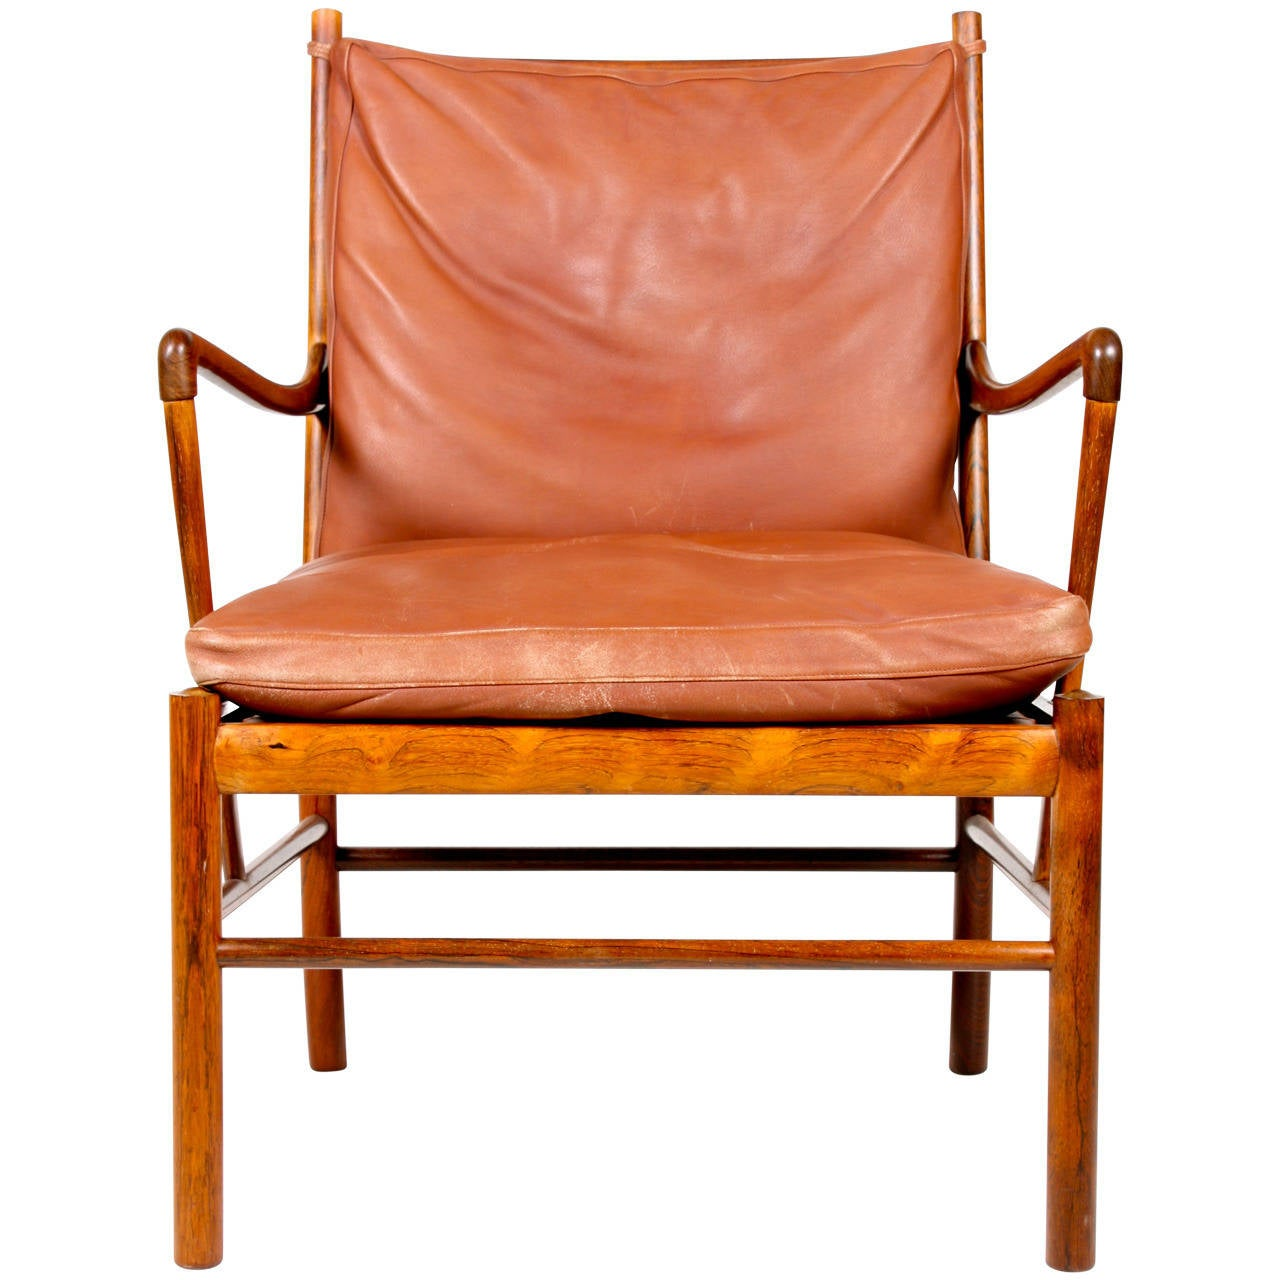 Colonial Chair The Colonial Chair By Ole Wanscher At 1stdibs